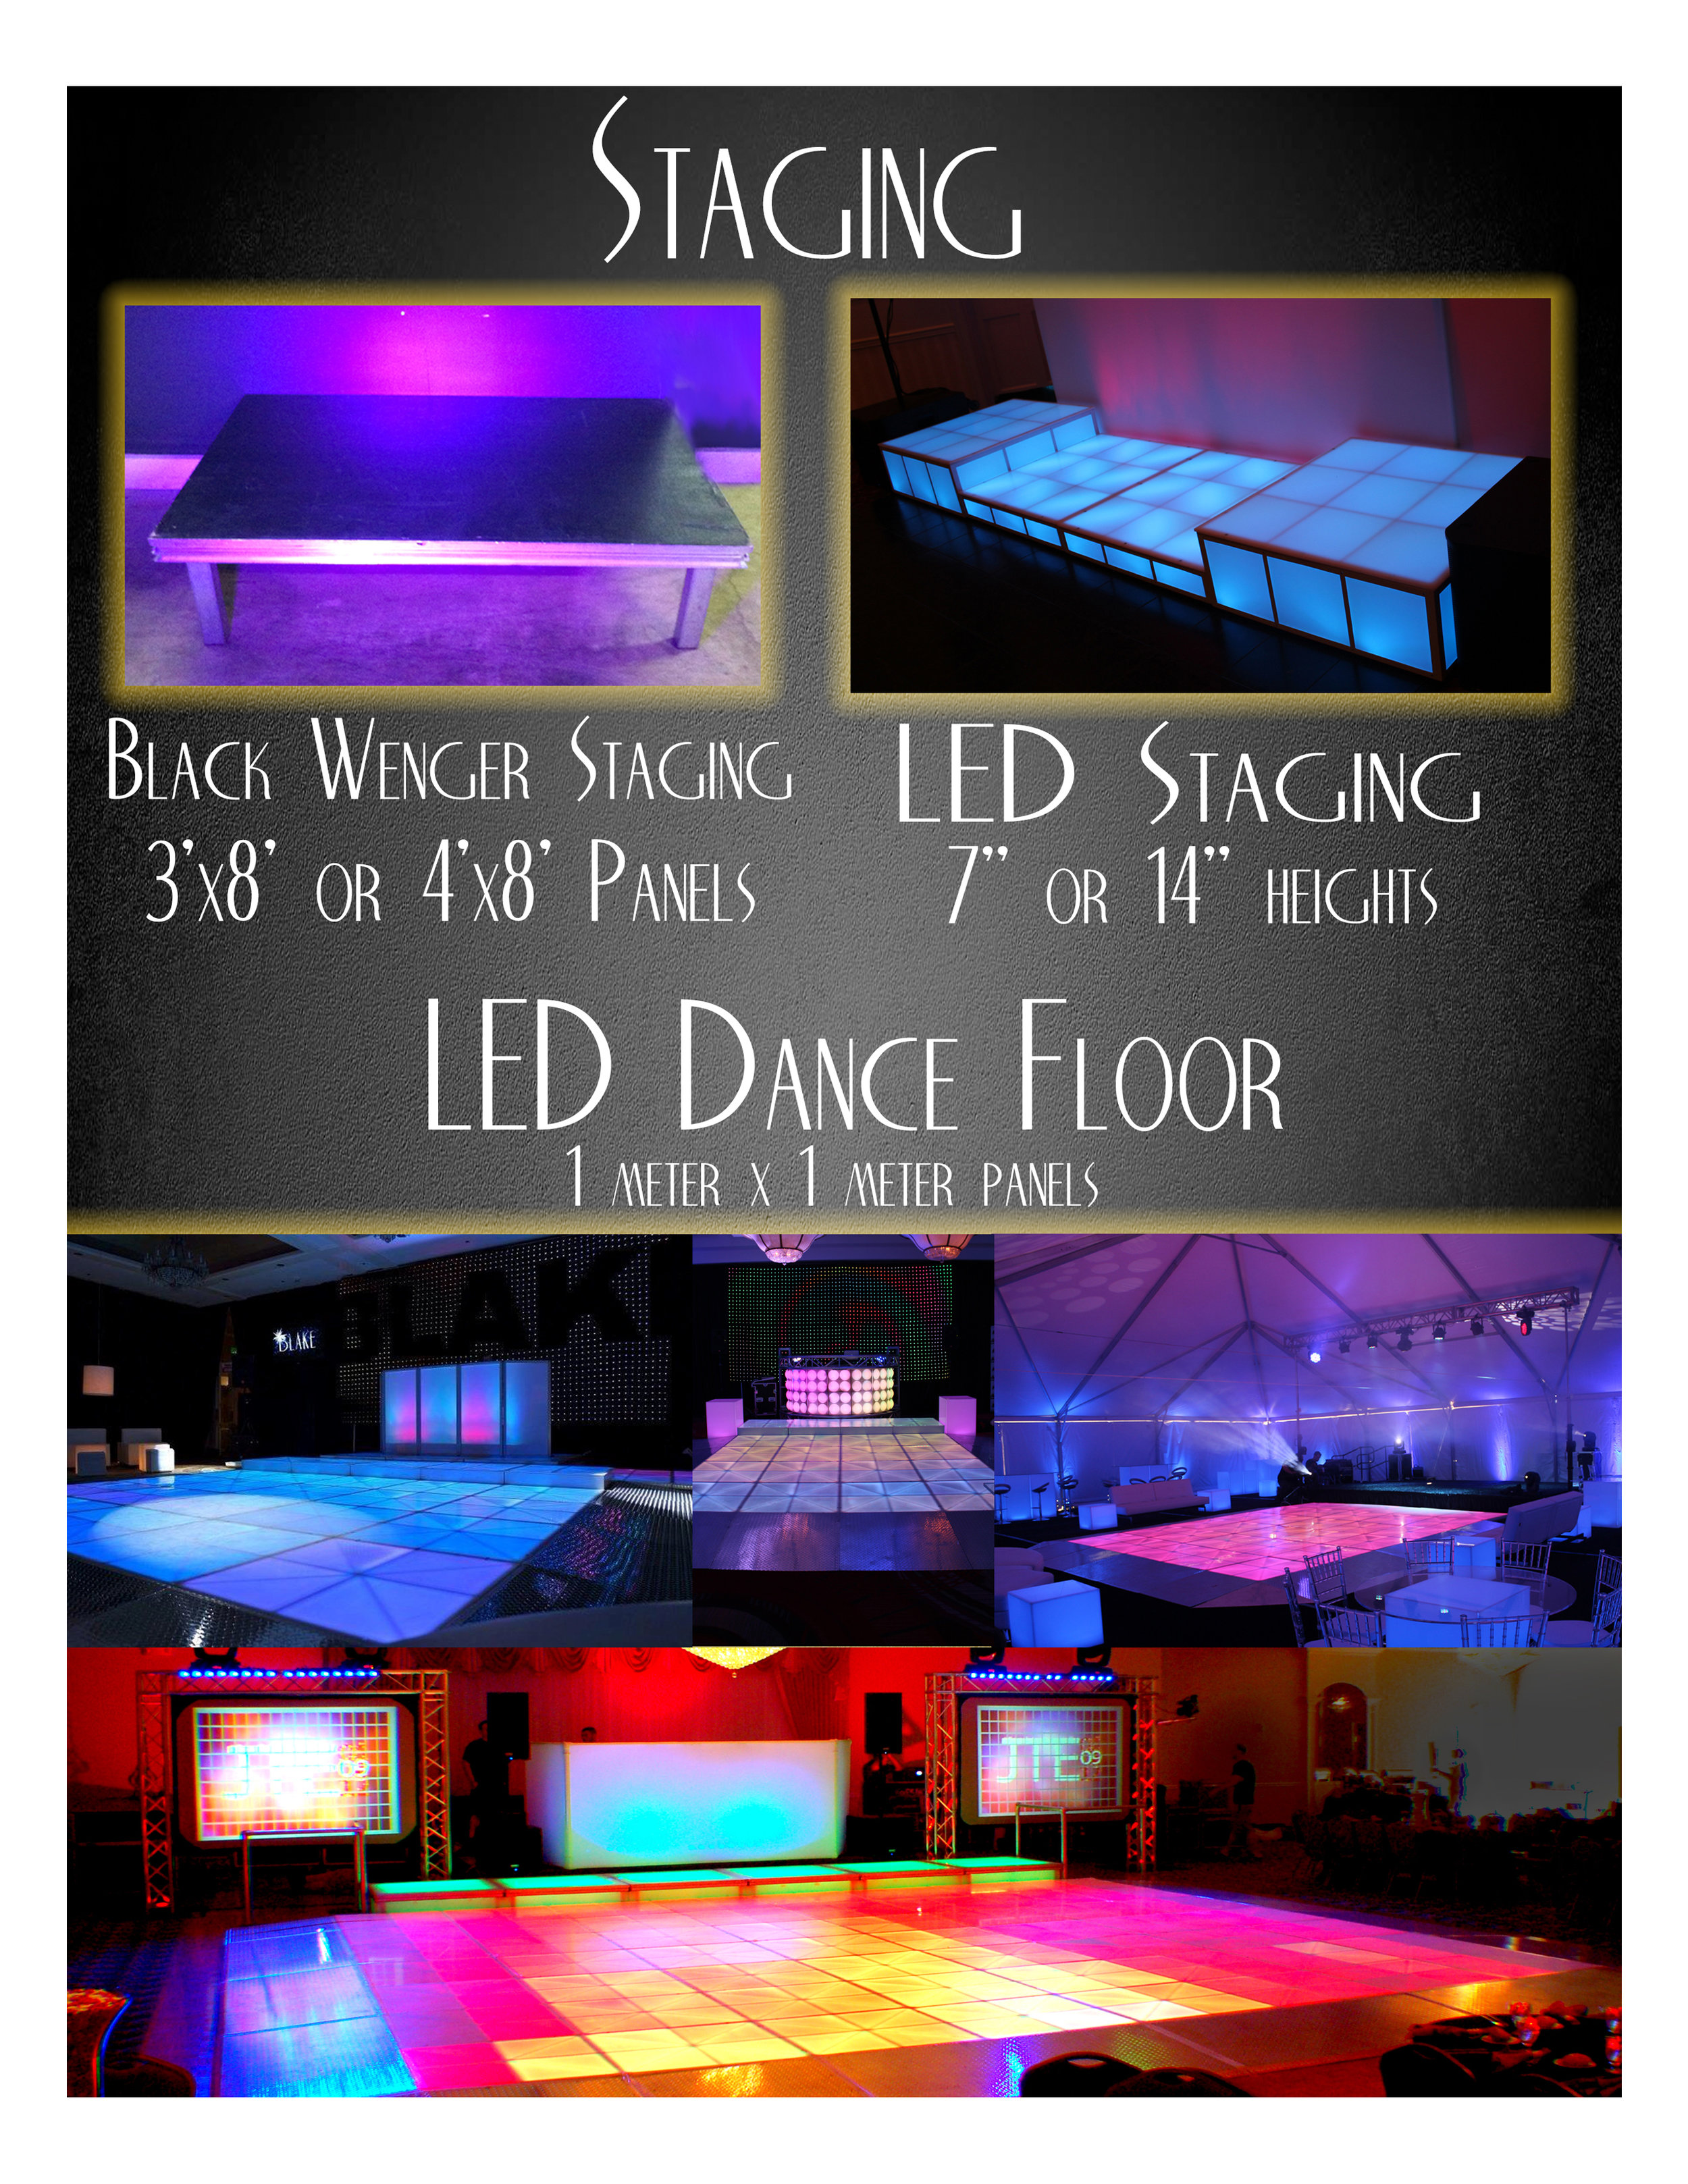 006-P6_Staging & LED Dance Floor.jpg